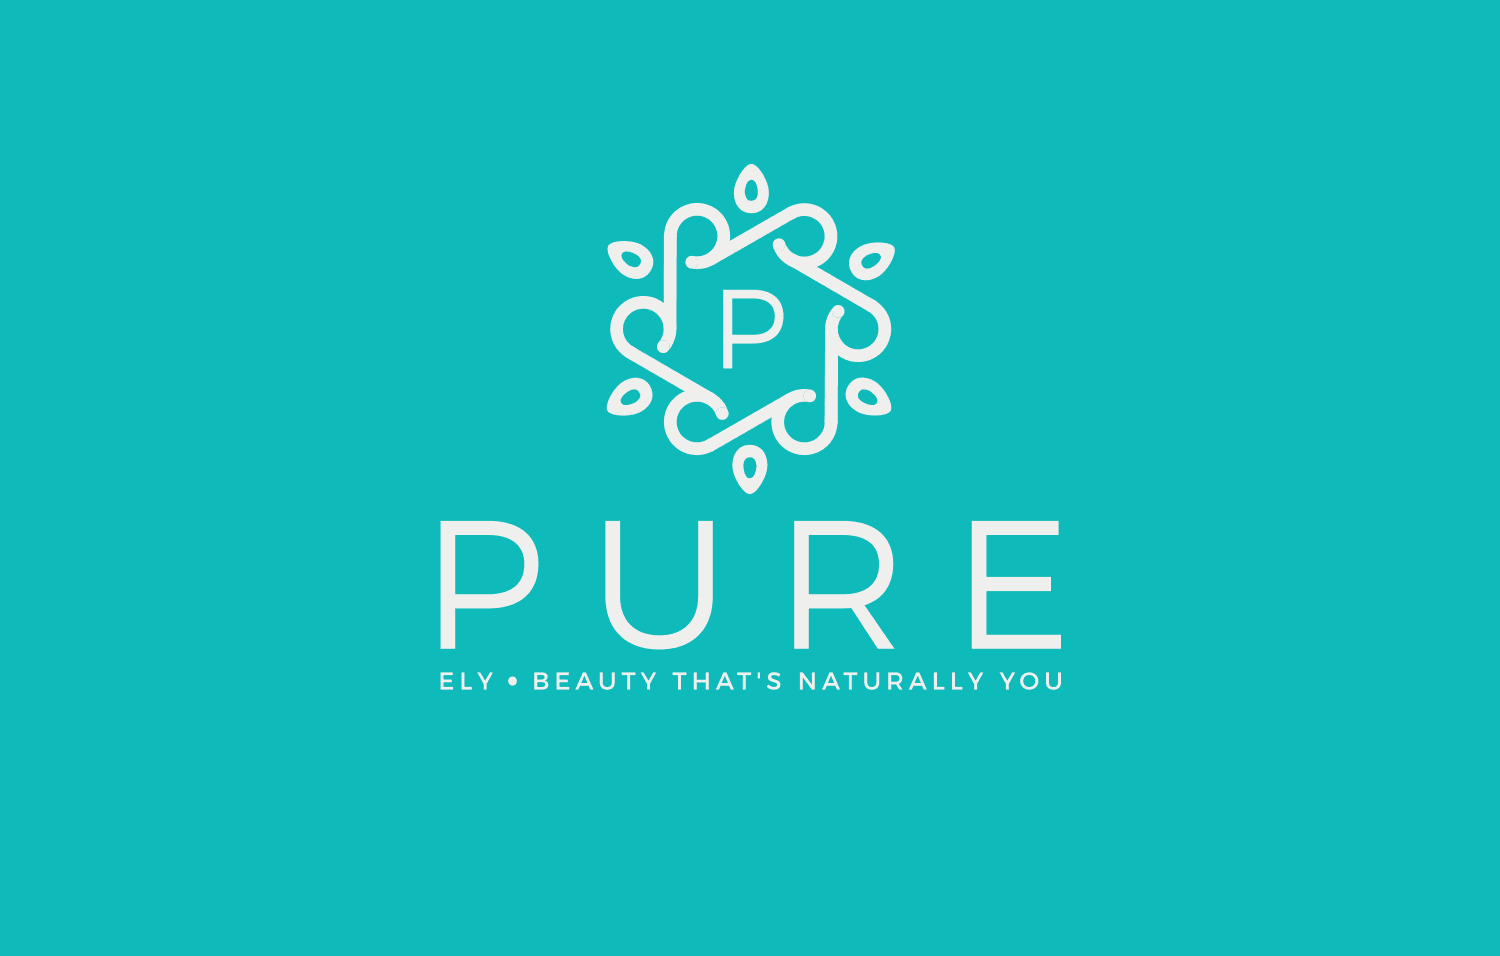 Pure Ely logo explanation